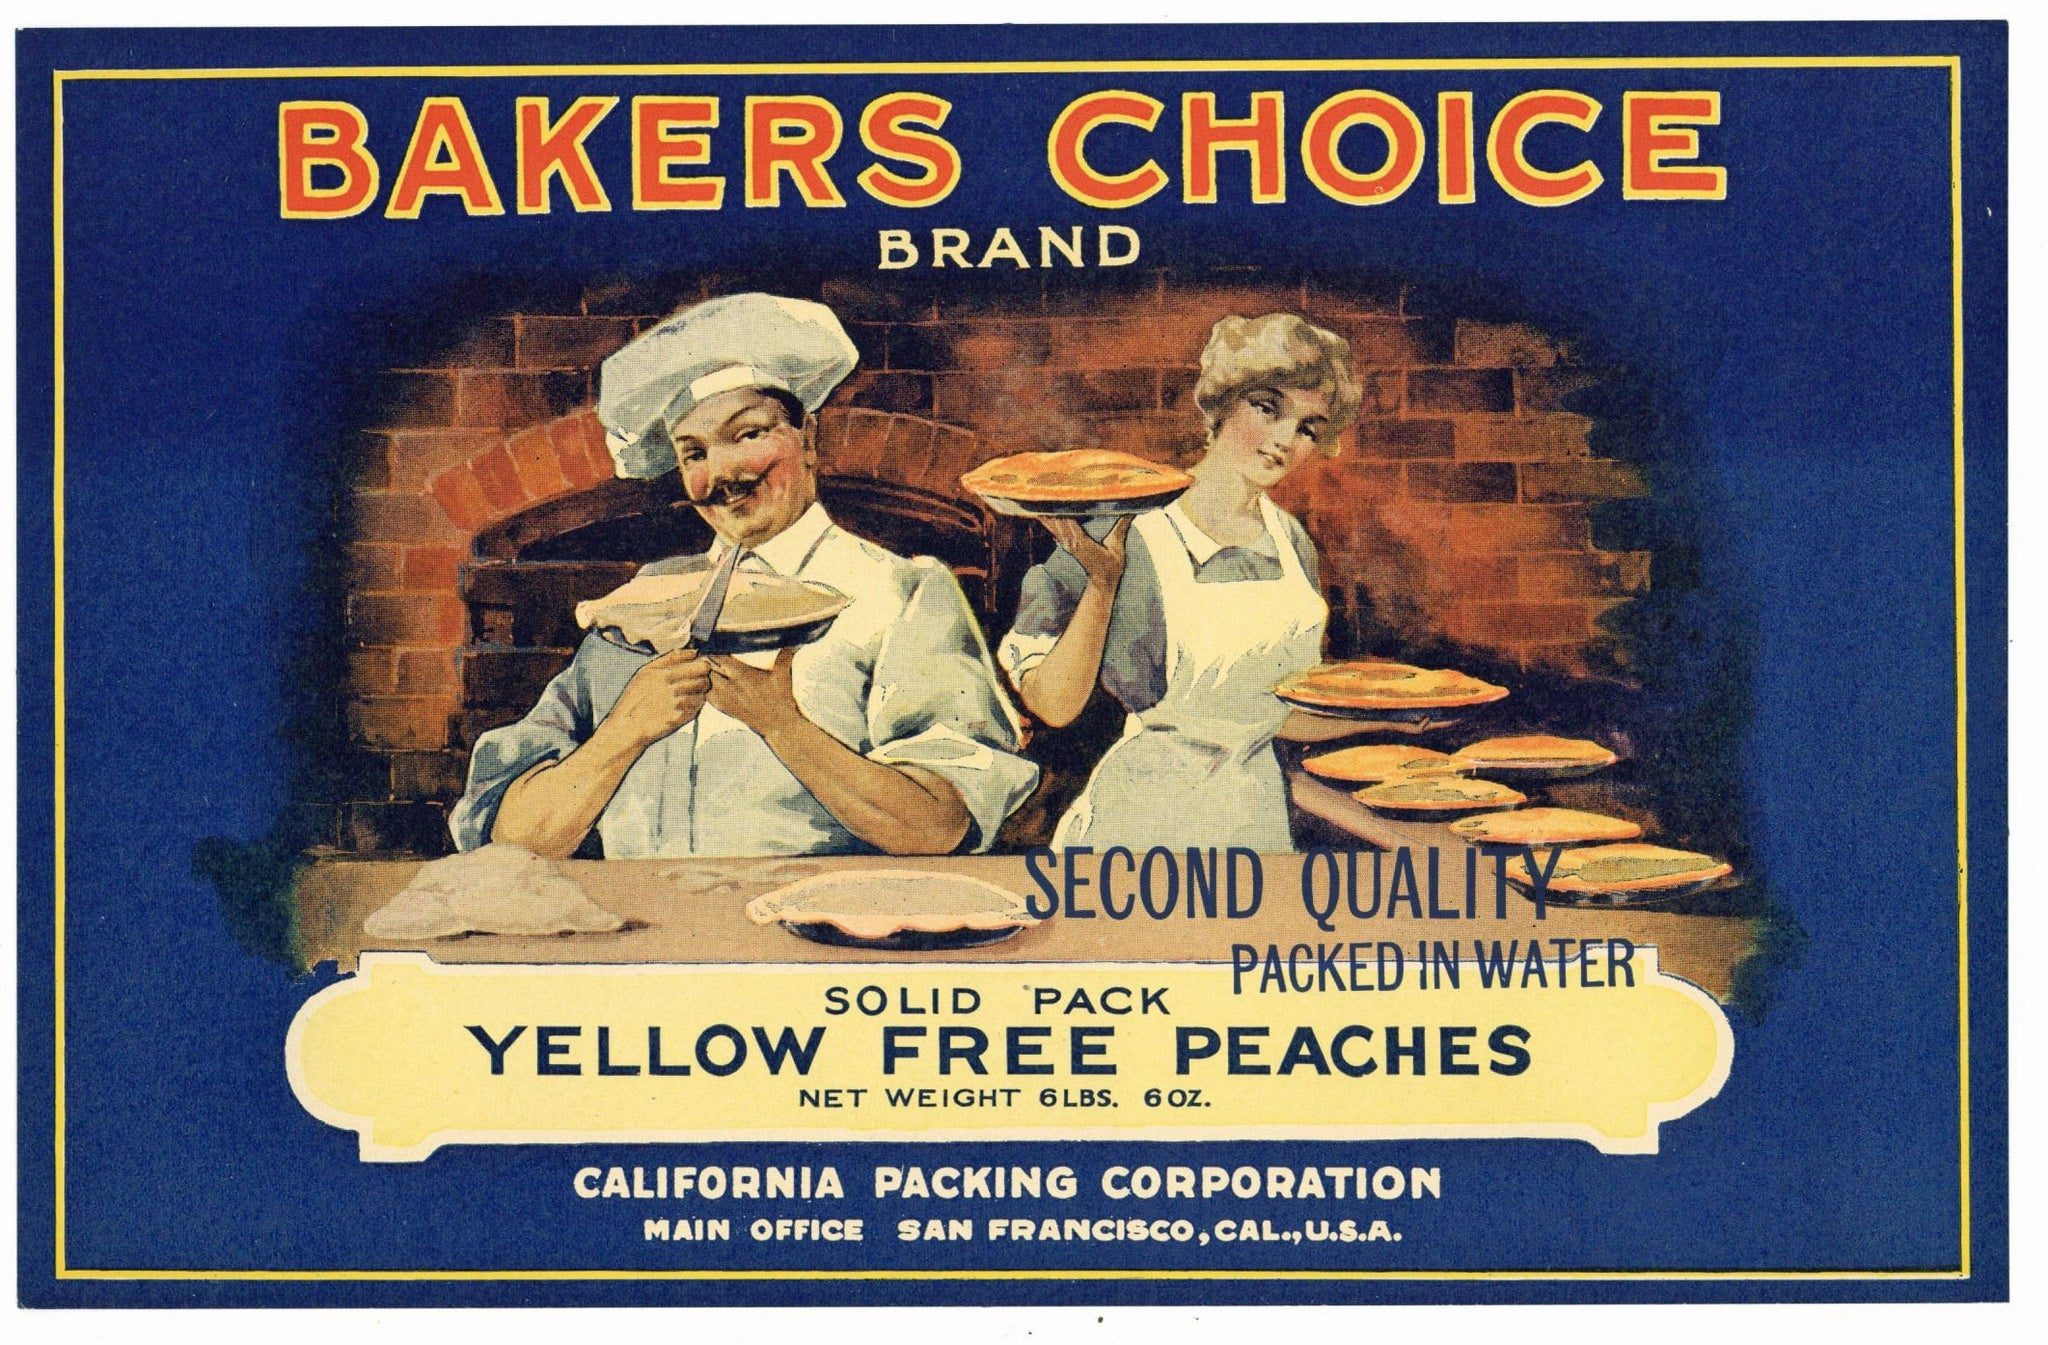 Bakers Choice Brand Vintage Peach Can Label